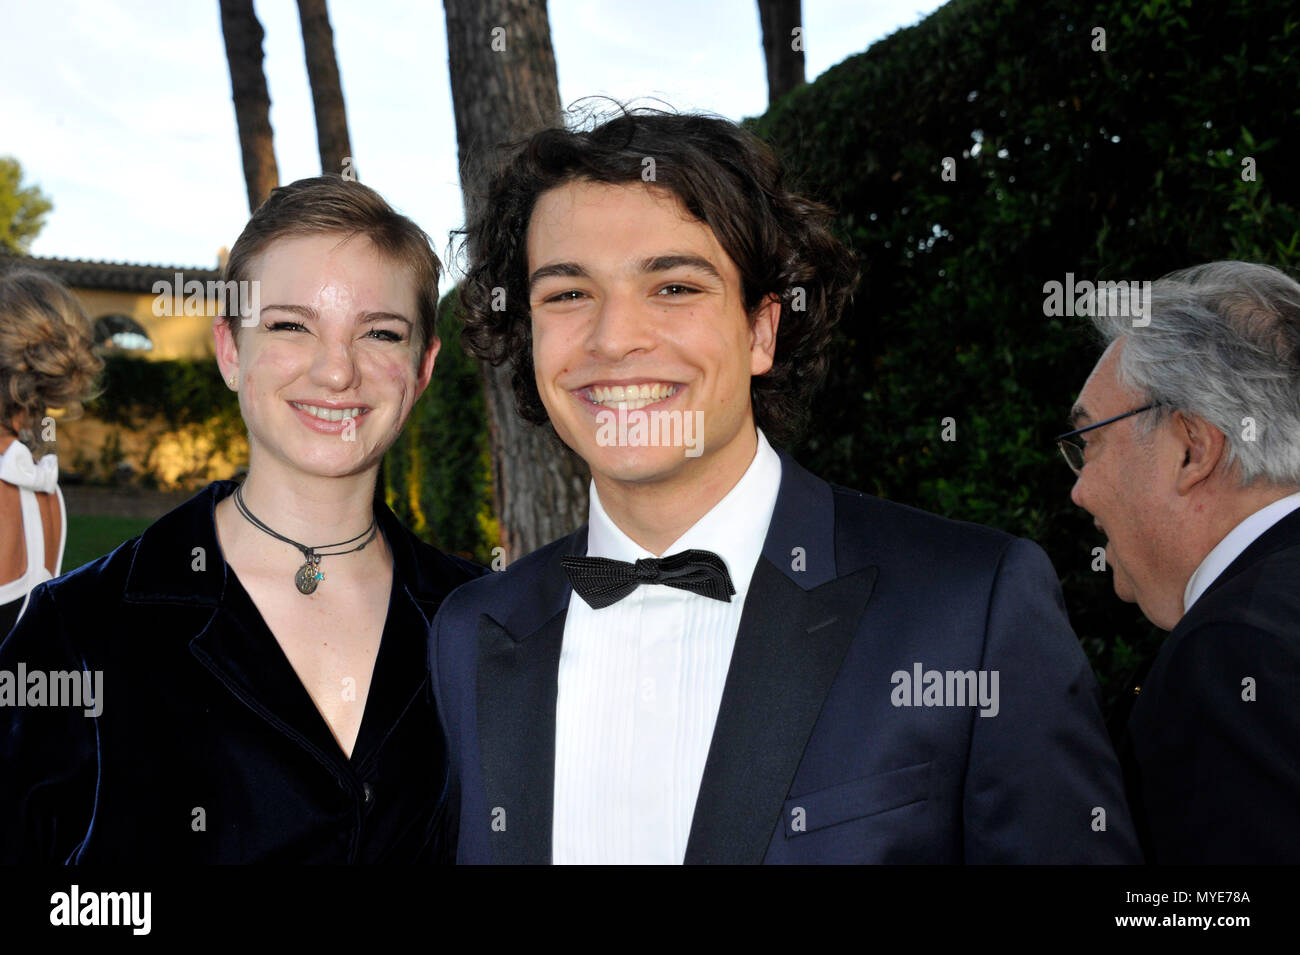 Rome American Academy In Rome Mckim Medal Pictured Gala Leo Gassman Bebe Vio Credit Independent Photo Agency Alamy Live News